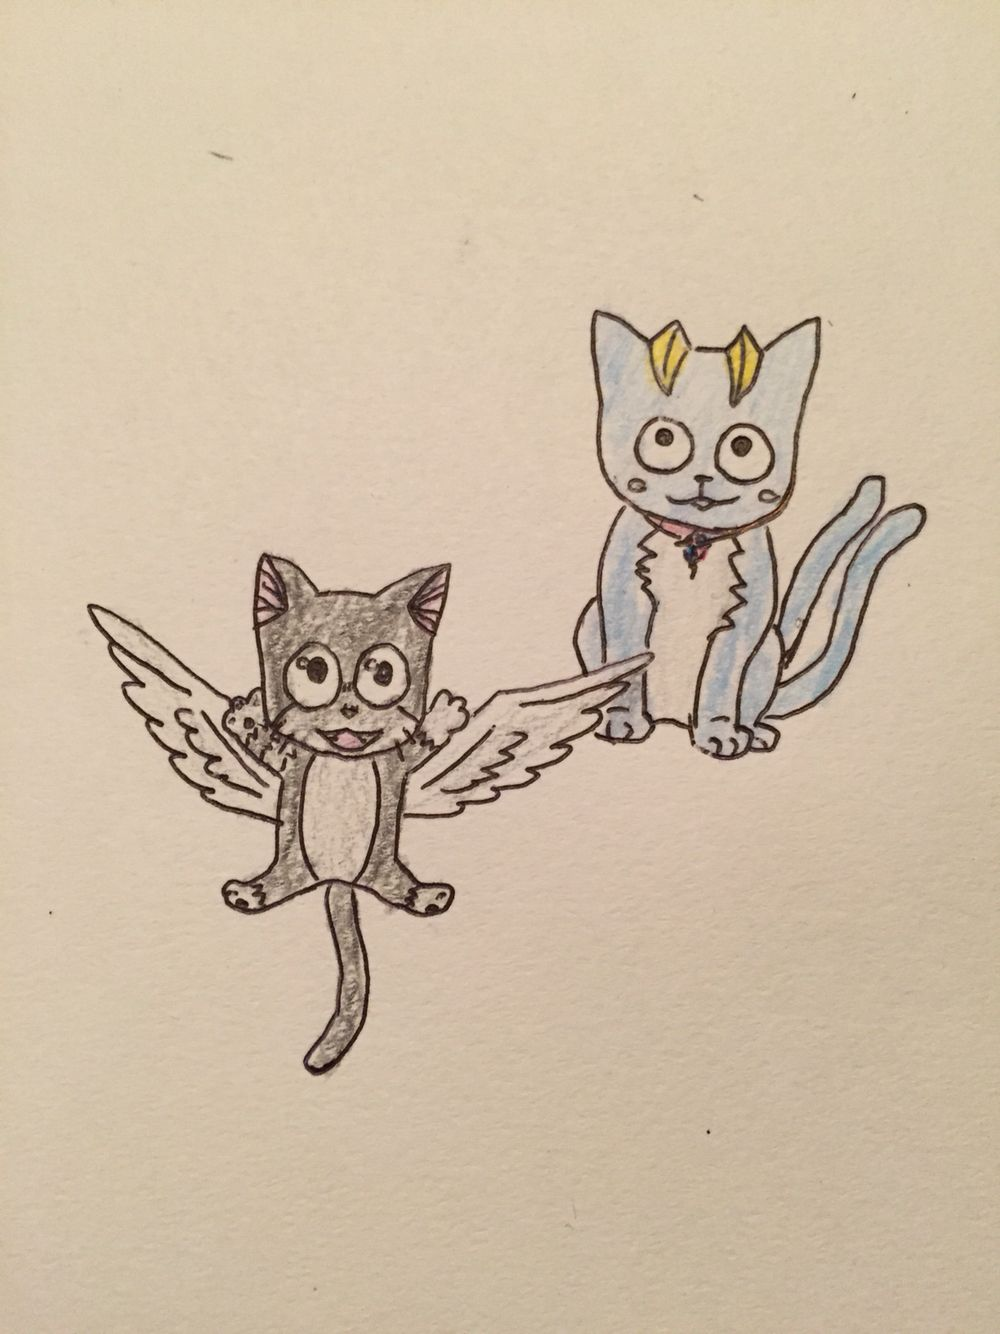 What if Happy from Fairy Tail was Cat sidhe and Kuro from